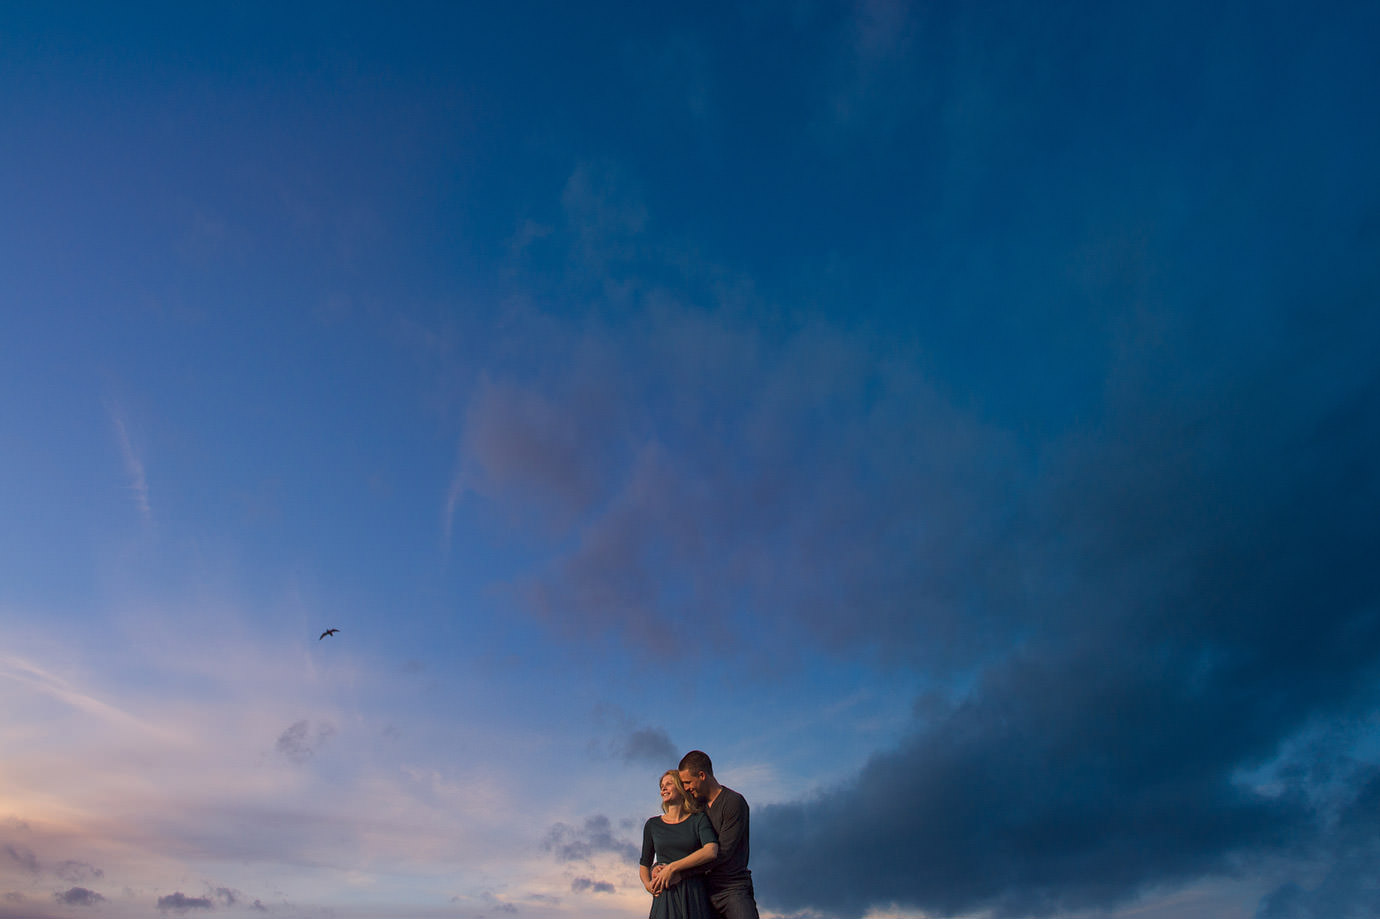 halifax engagement photographers, weddings, citadel hill, sunset, point pleasant park